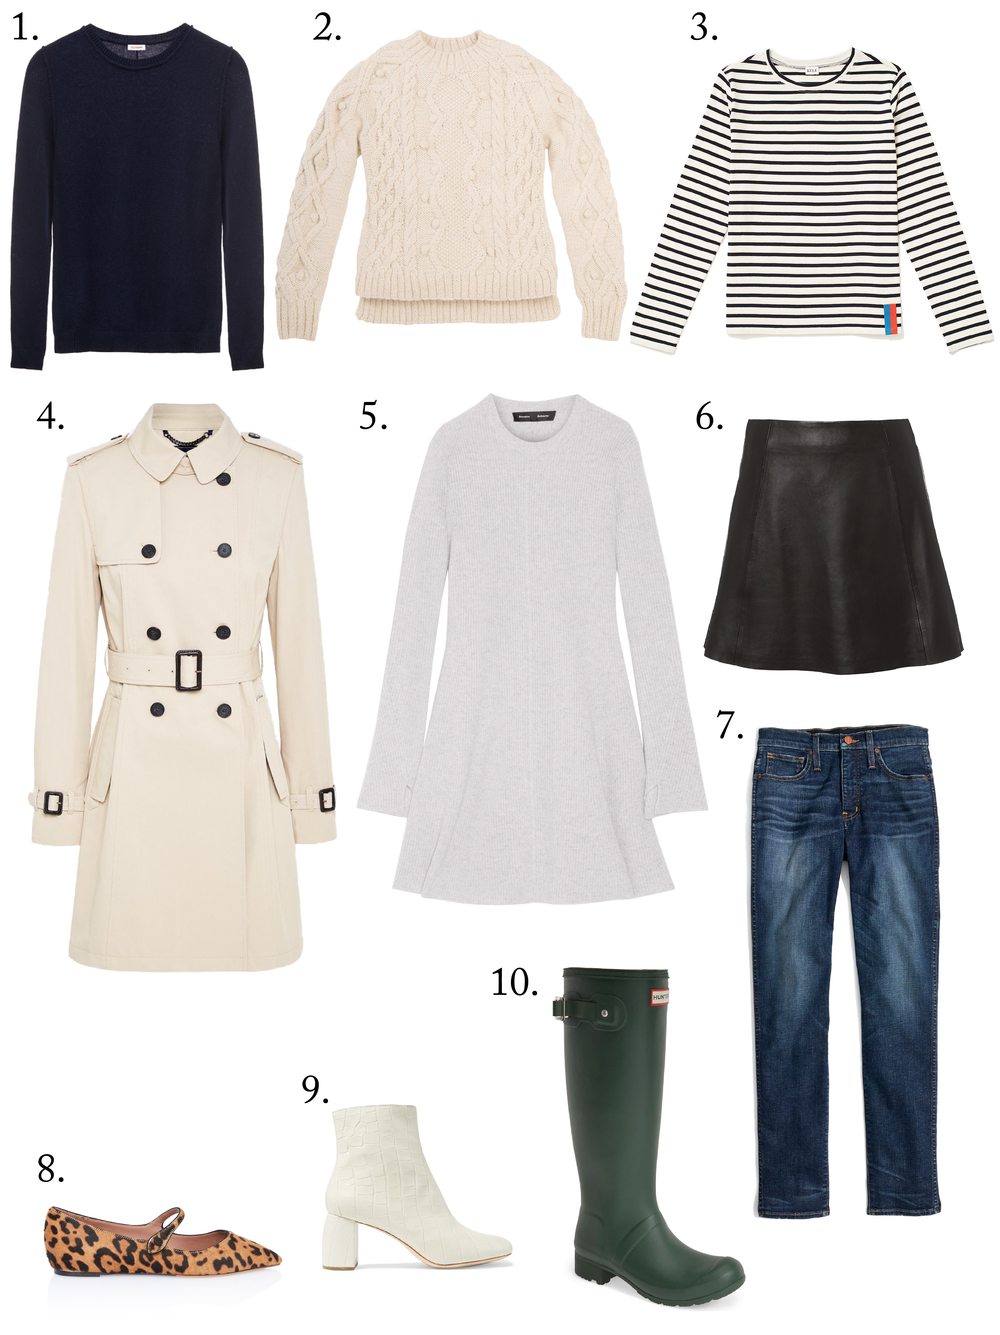 My Top 10 Style Staples for Fall | As a lover of fashion and classic style, these are the ten things I wear constantly in autumn. From leather jackets to stylish flats, click through to shop them all!